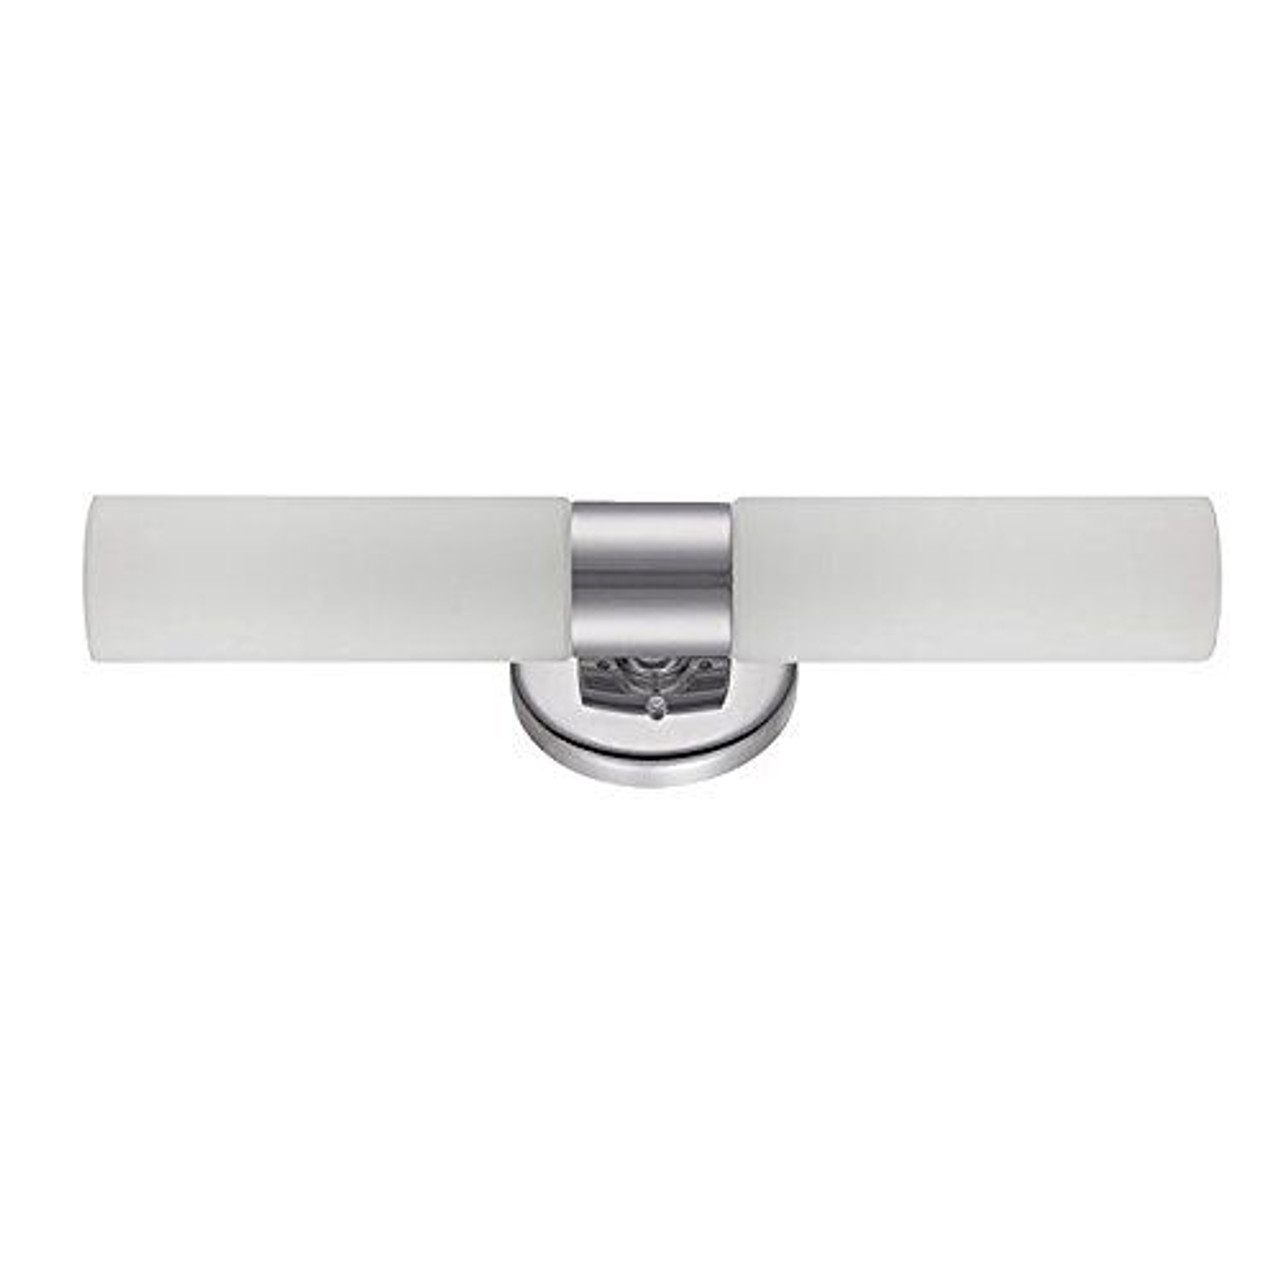 Sunset F9022 15 Frosted Glass 2 Light Vanity Light Sconce Fixture